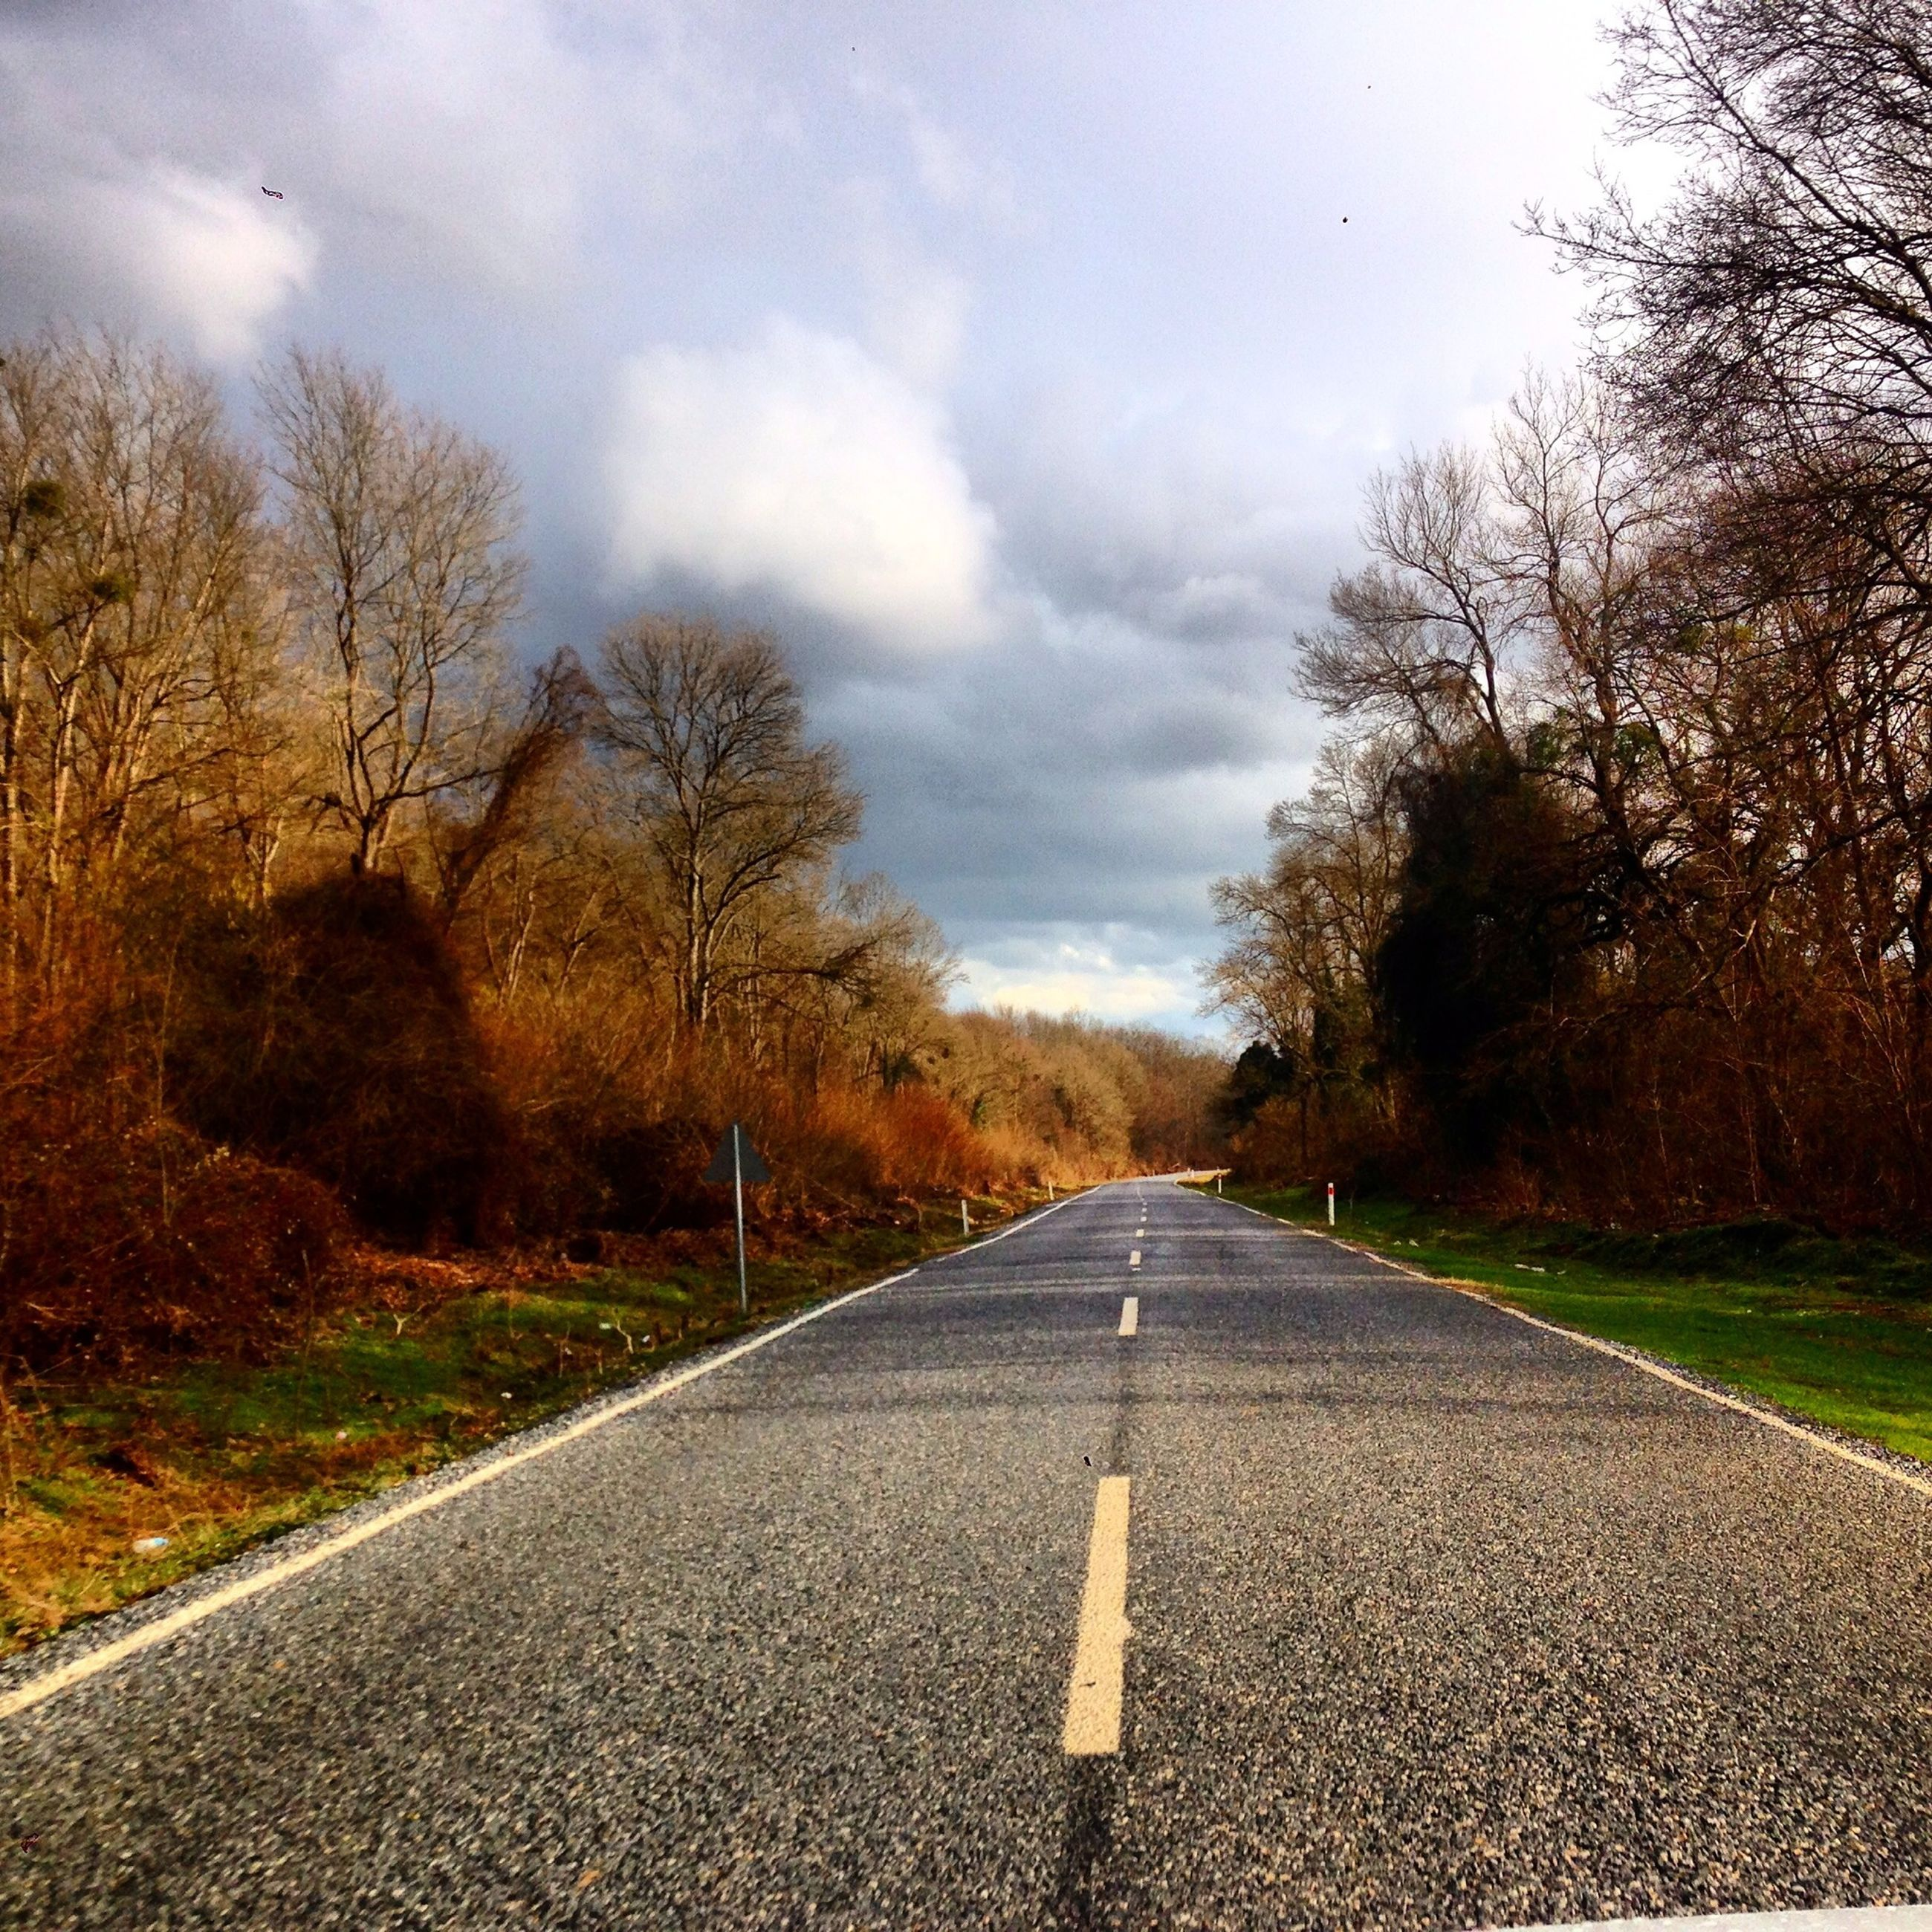 the way forward, diminishing perspective, transportation, road, road marking, vanishing point, tree, sky, cloud - sky, asphalt, country road, empty road, cloudy, empty, tranquility, cloud, street, tranquil scene, nature, long